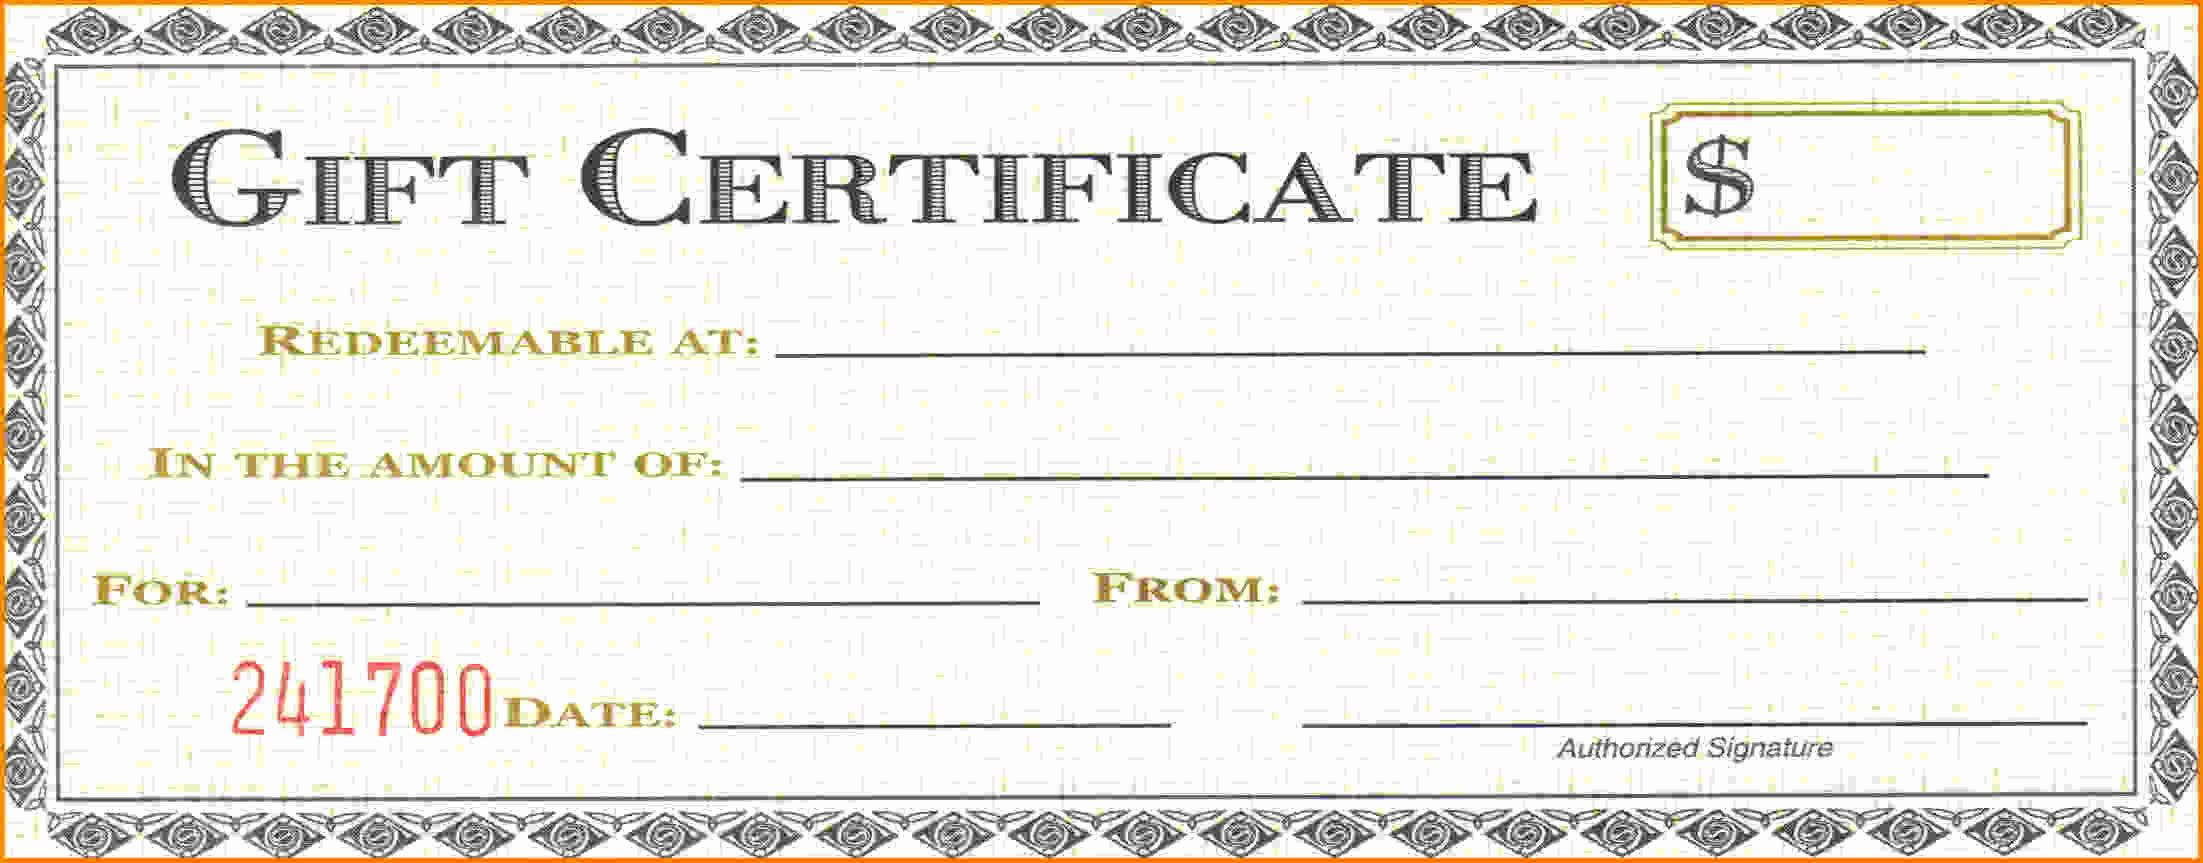 Gftlz Gift Certificate Template Download Fresh What It is A Gift Certificate Template